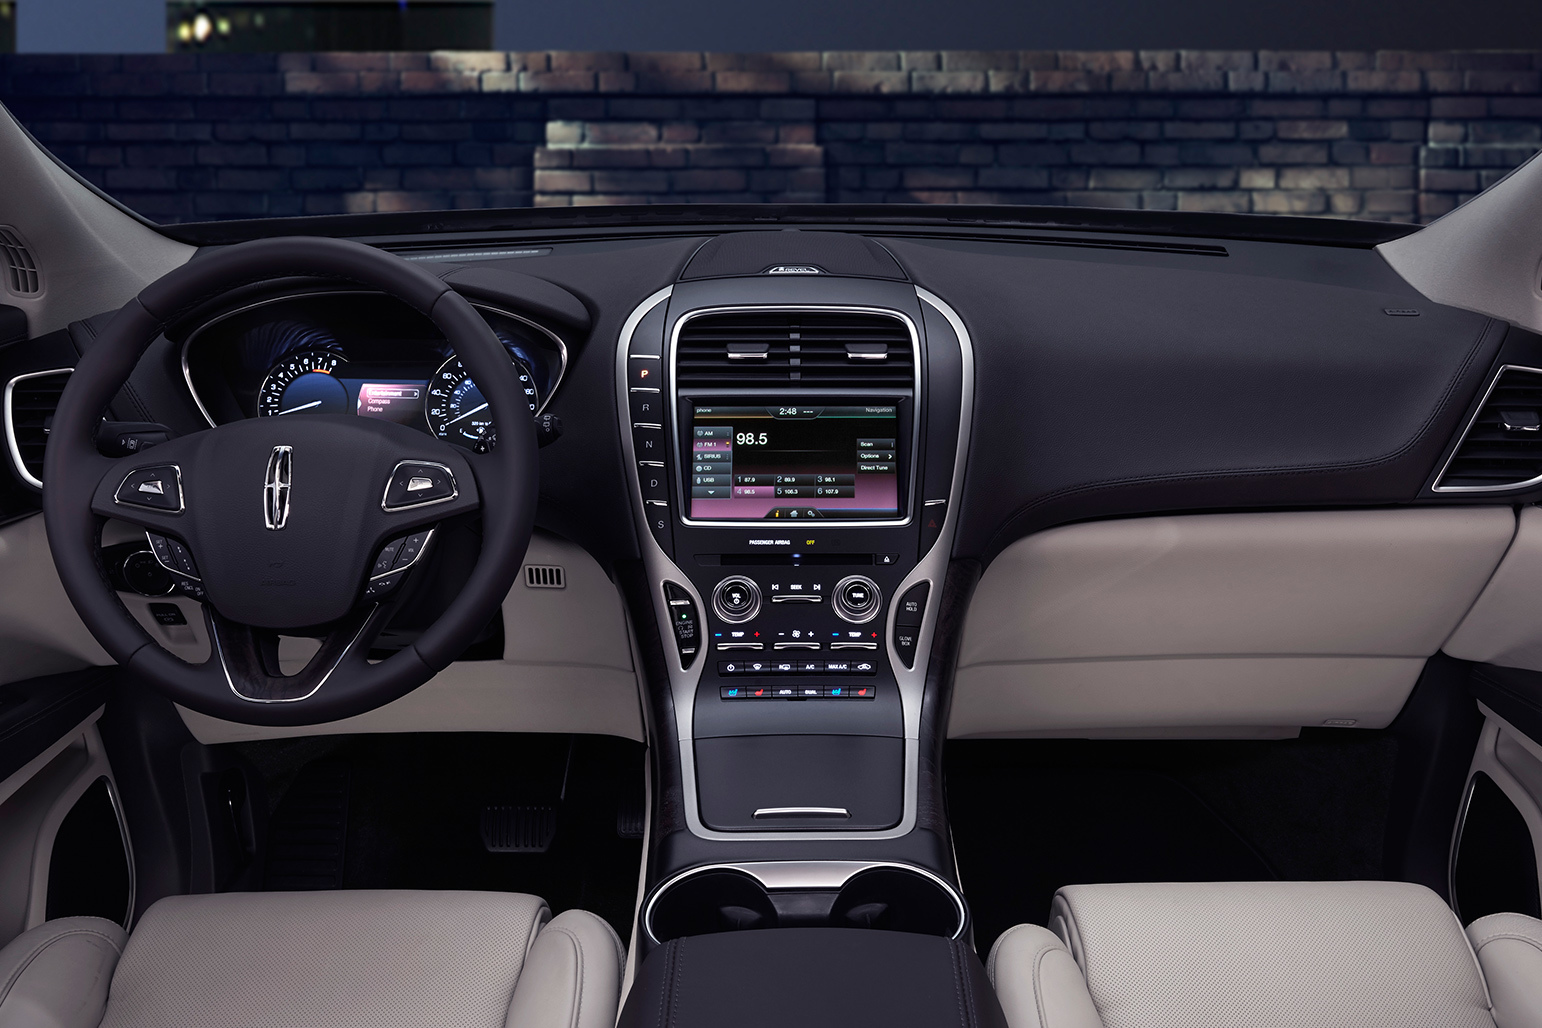 2016 Lincoln Mkx Leaked F150 Luxury Vehicle 2015 Ford And Lincoln Car Forums City Data